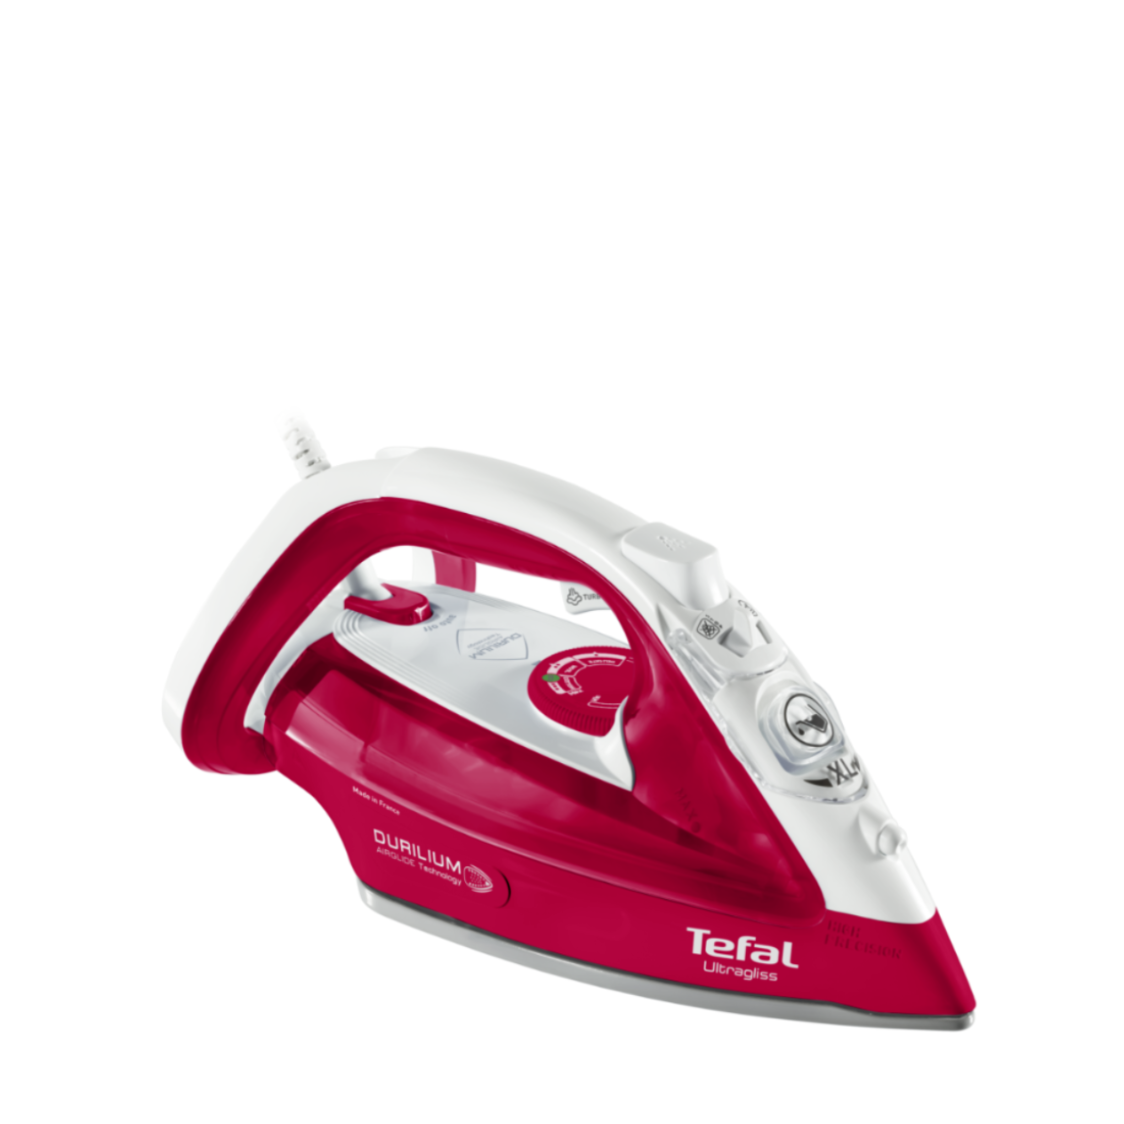 Tefal Steam Iron Ultragliss Made in France FV4950M0